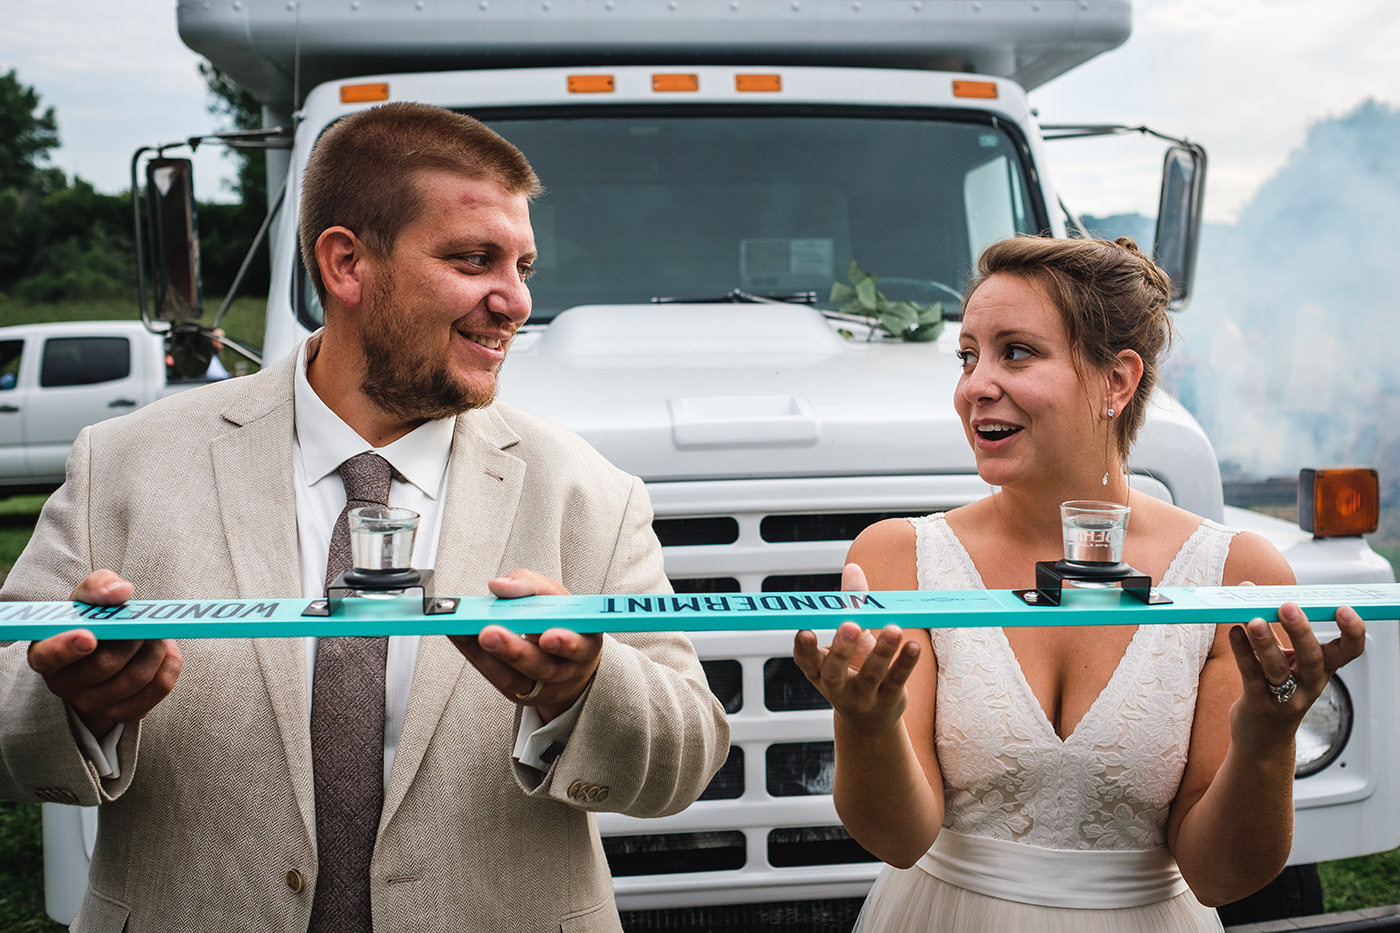 Bride and groom drinking from shot ski during their wedding